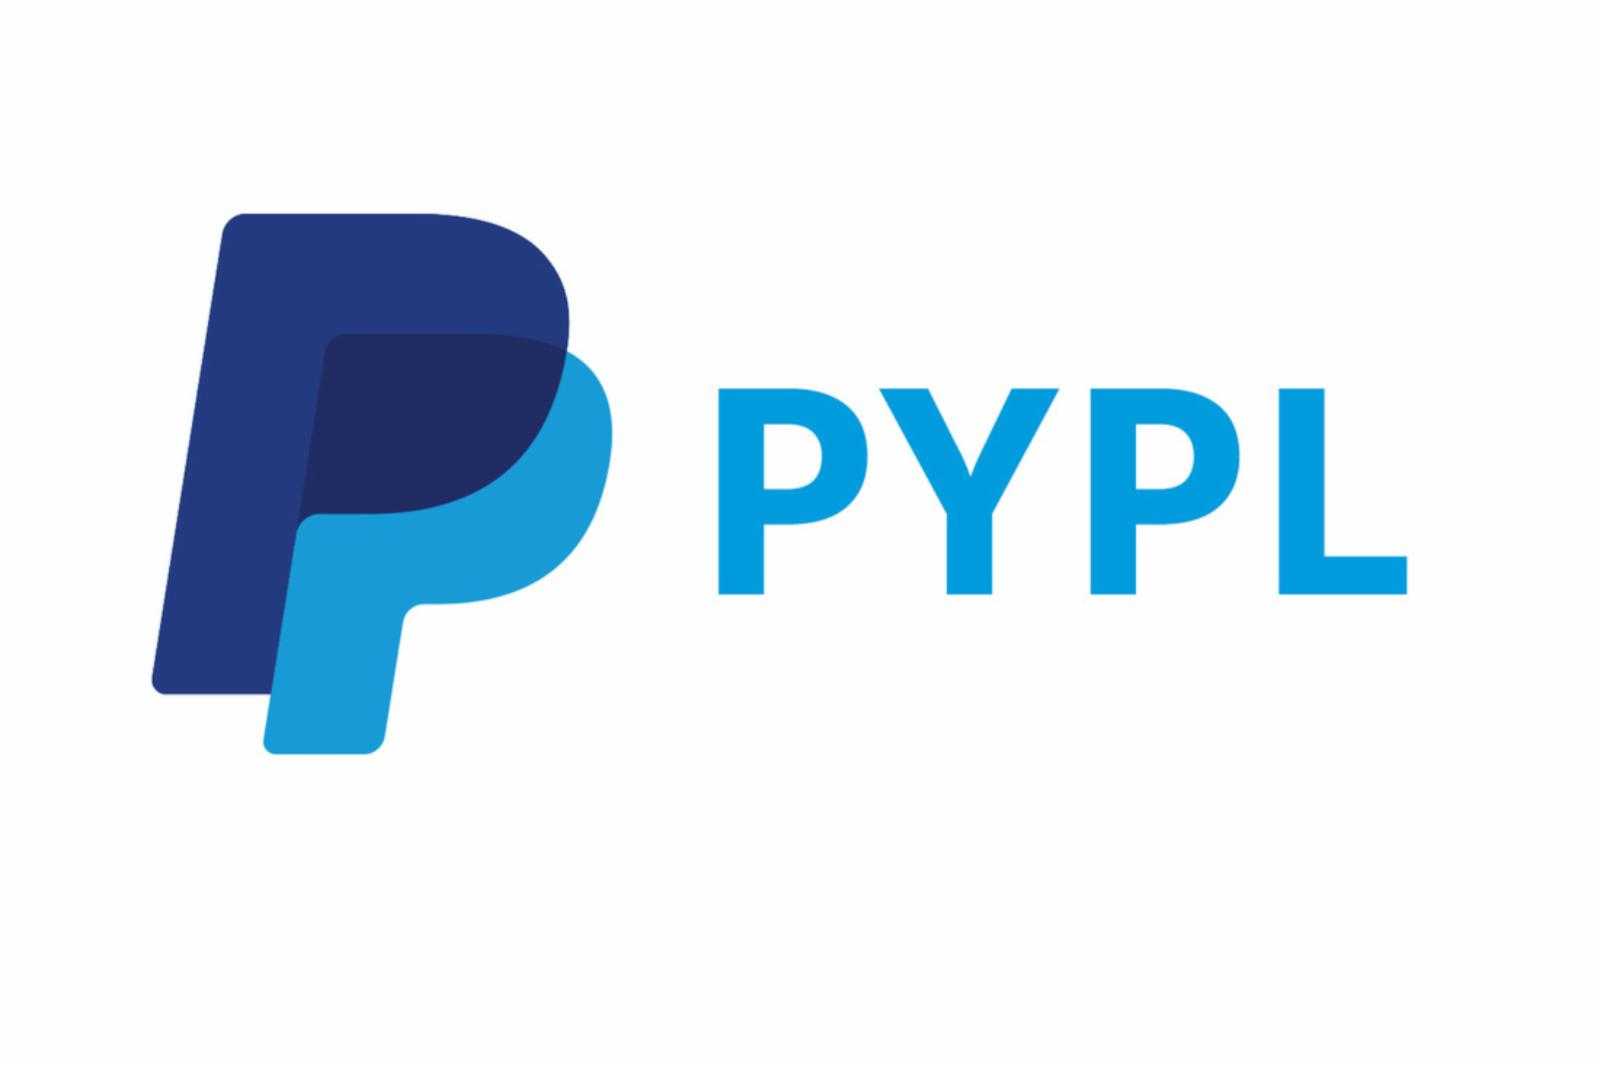 Pypl Quote Pypl Quote Simple Why Growth Investors Should Consider Paypal Pypl